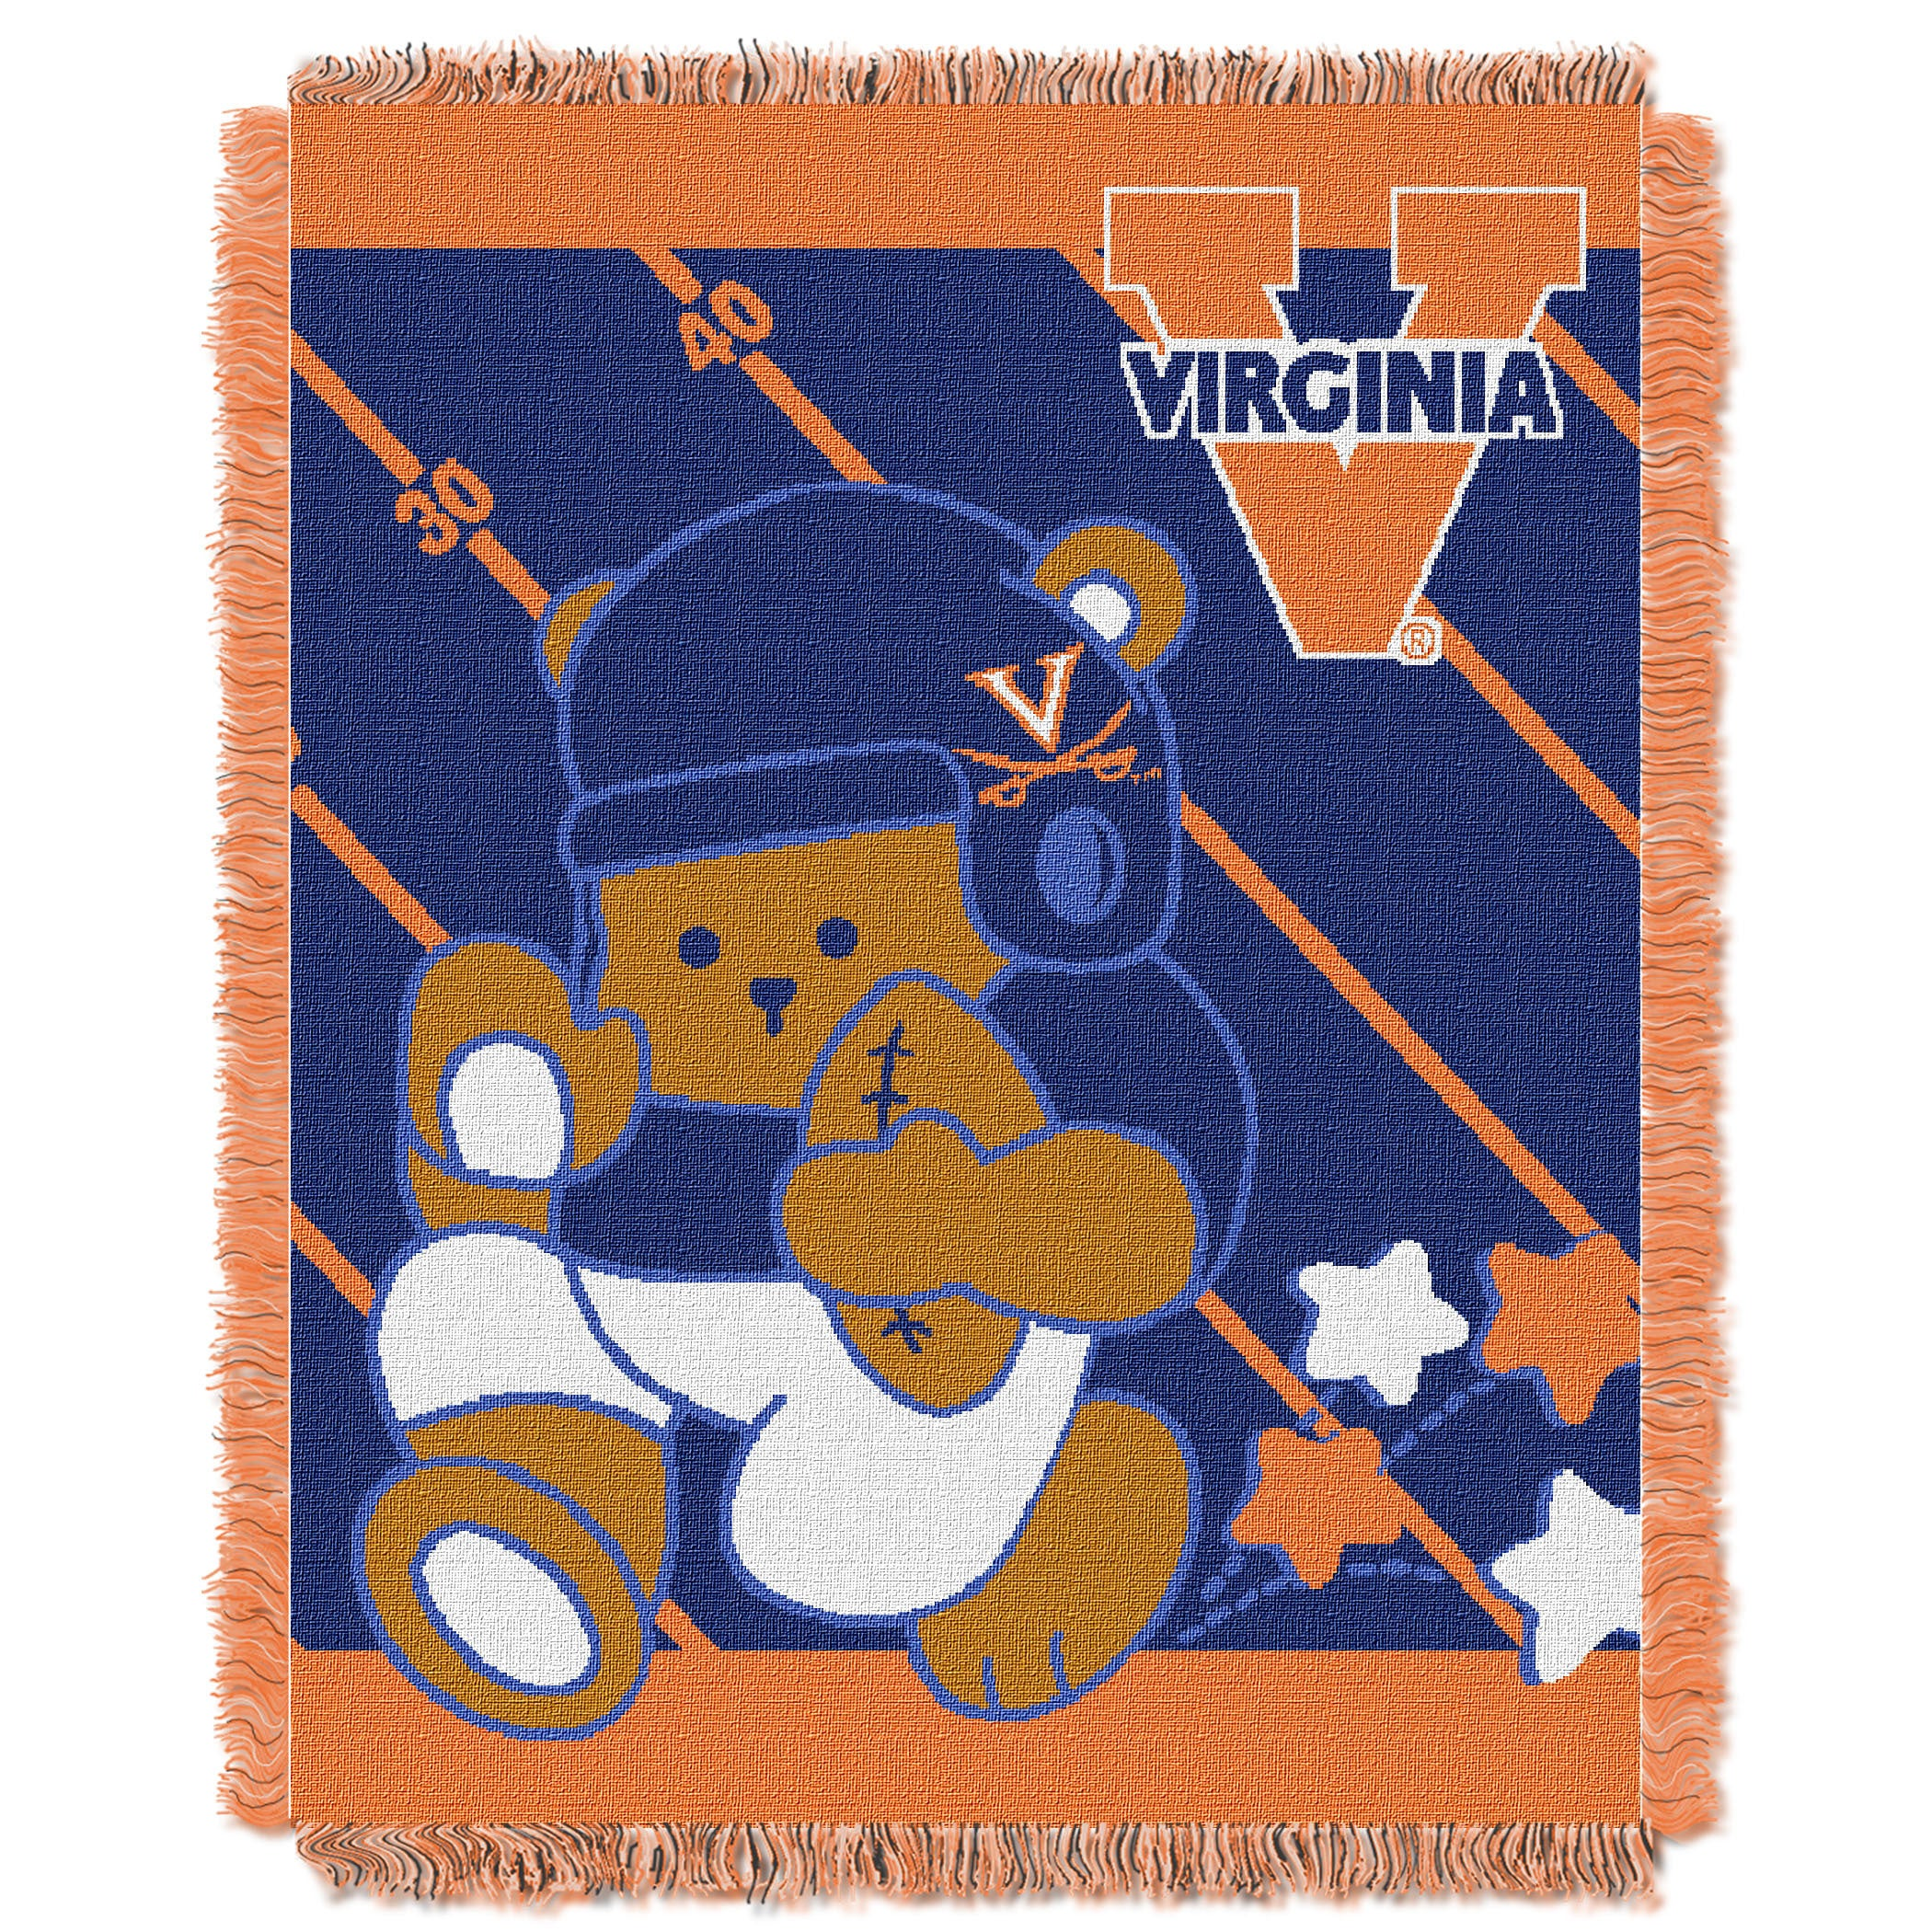 Norwesco COL 044 Virginia Baby Blanket (Multi Colored) (A...